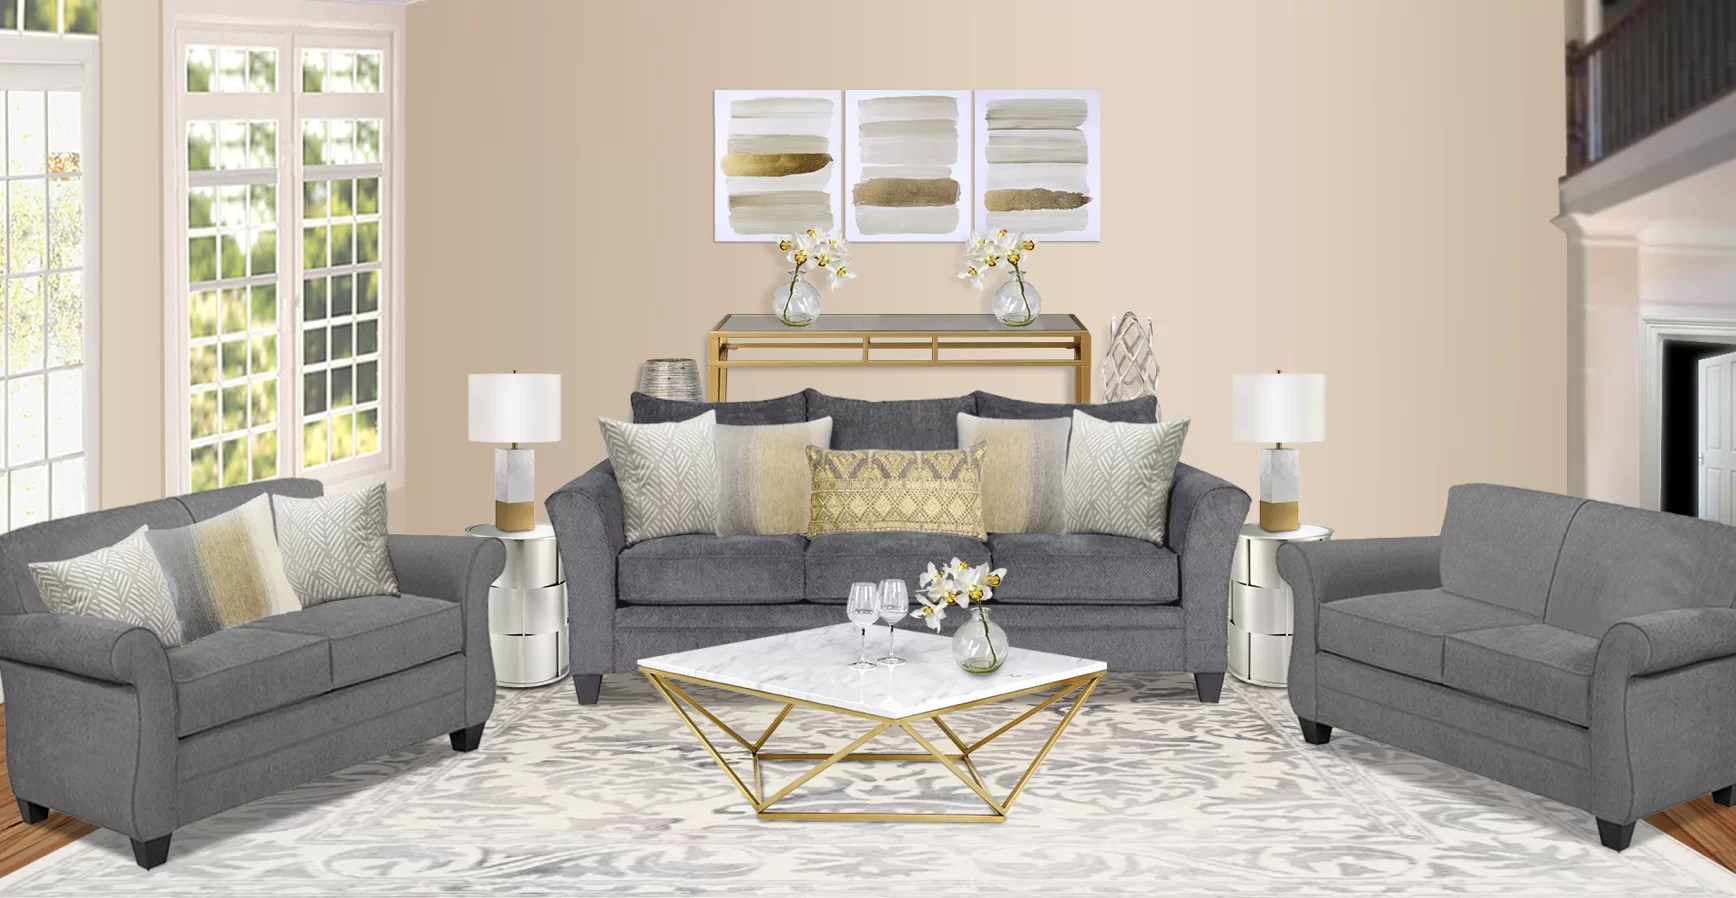 A Living Room Design Wayfair Design Services